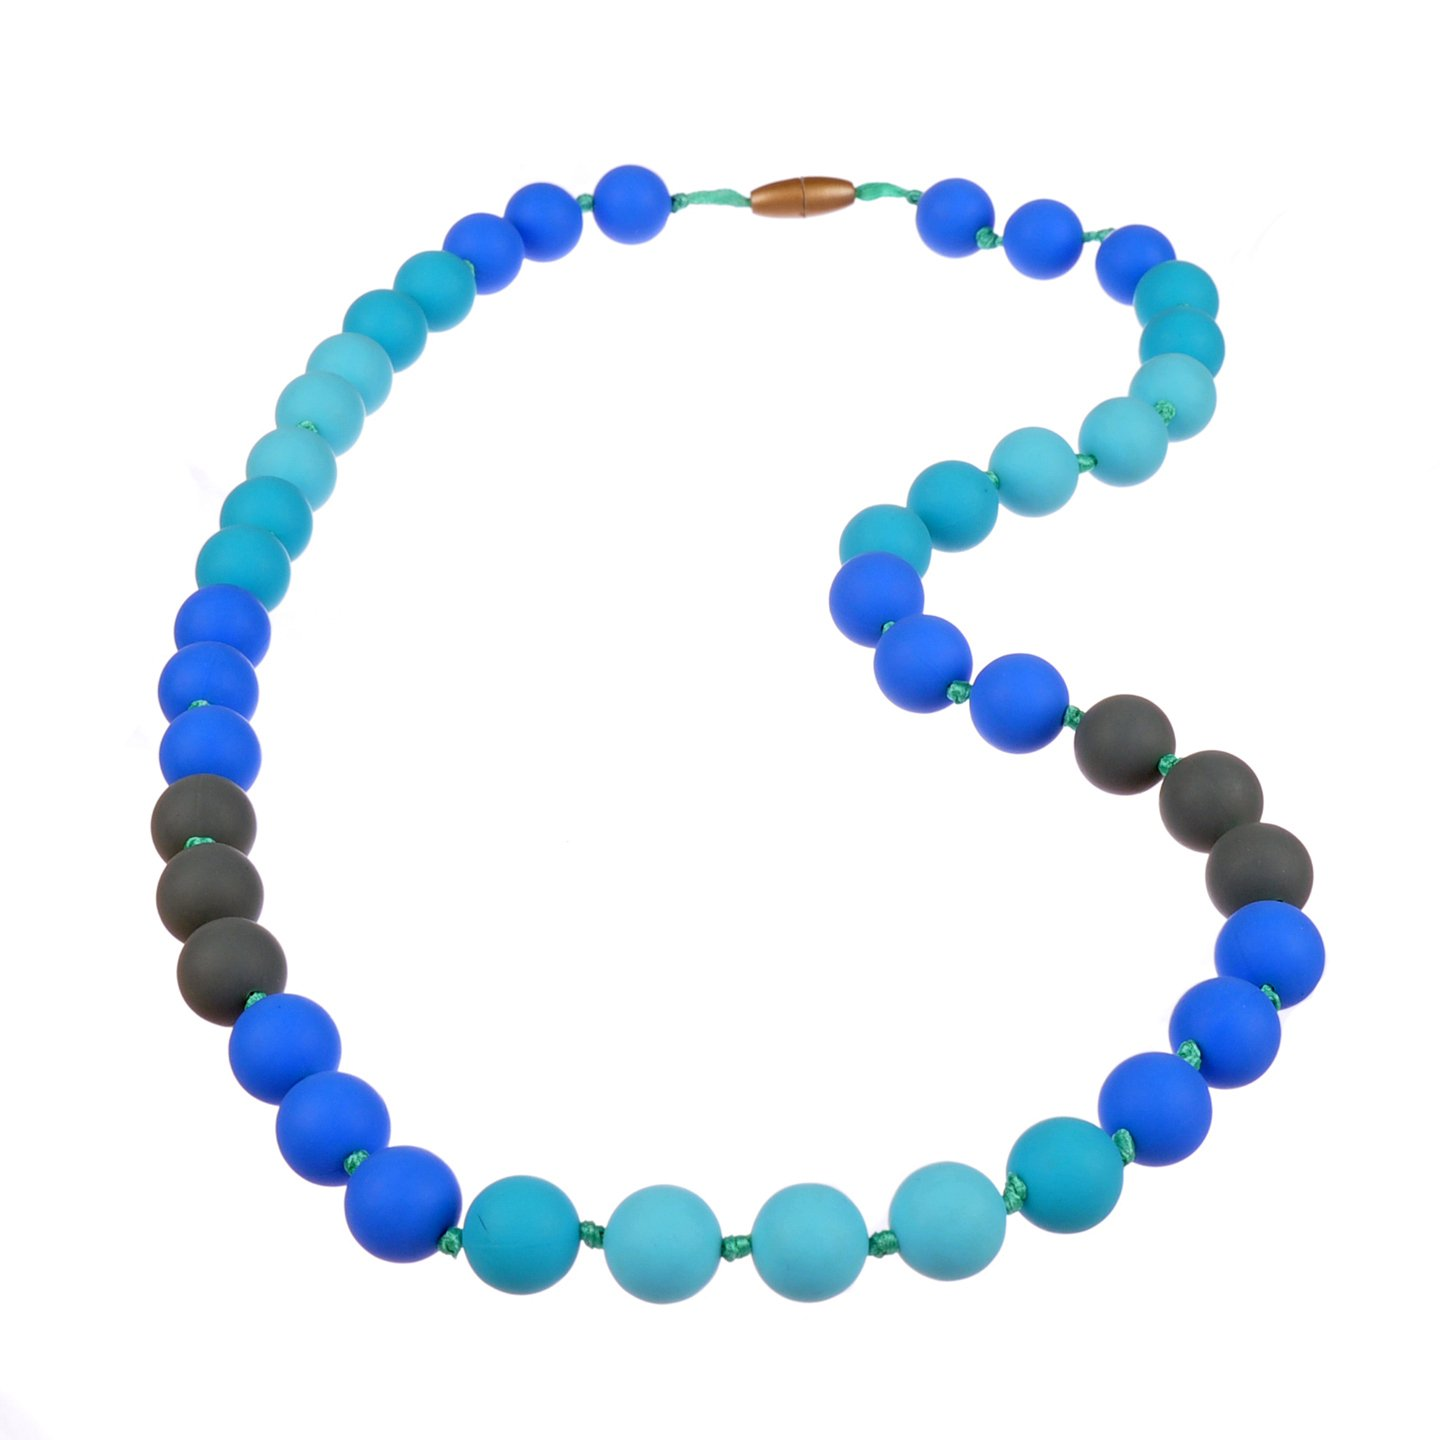 Jelly Strands Lizzie Baby Teething Necklace Turquoise by Jelly Strands   B00EF7Y6RM